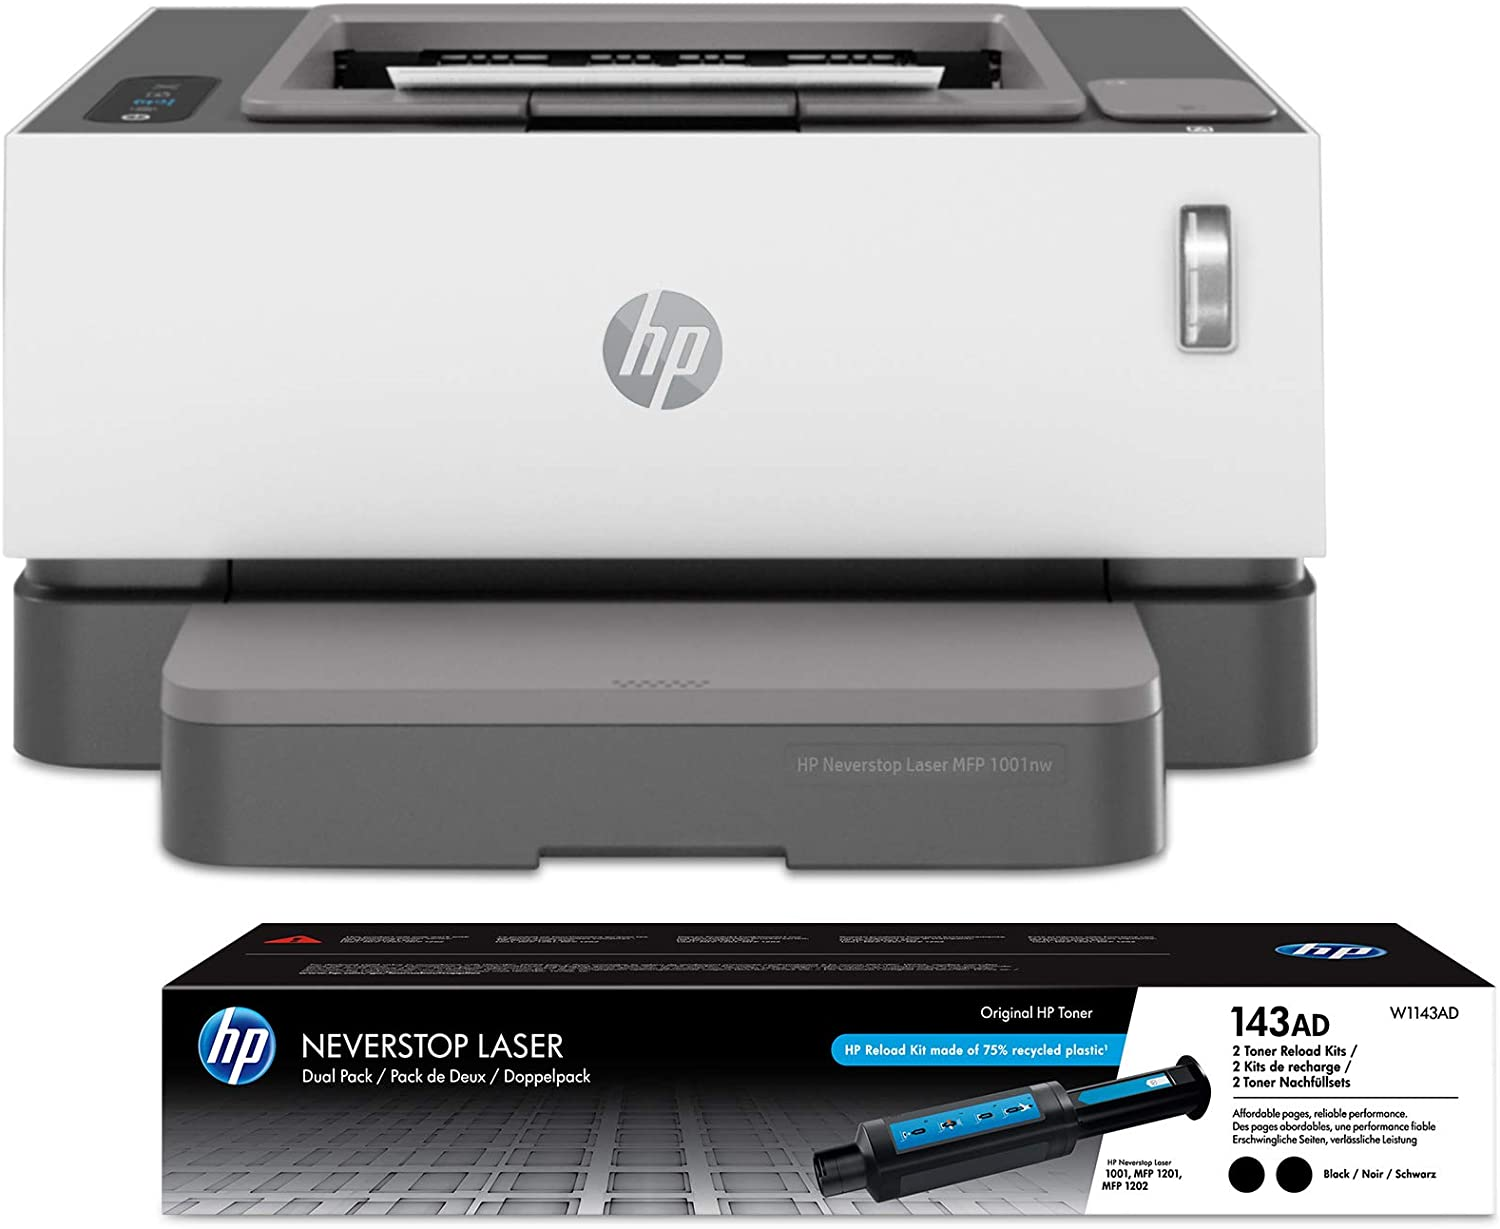 HP Neverstop Laser Printer 1001nw | Wireless Laser with Cartridge-Free Monochrome-Toner-Tank (5HG80A) with-Toner Reload-Kit 2-Pack